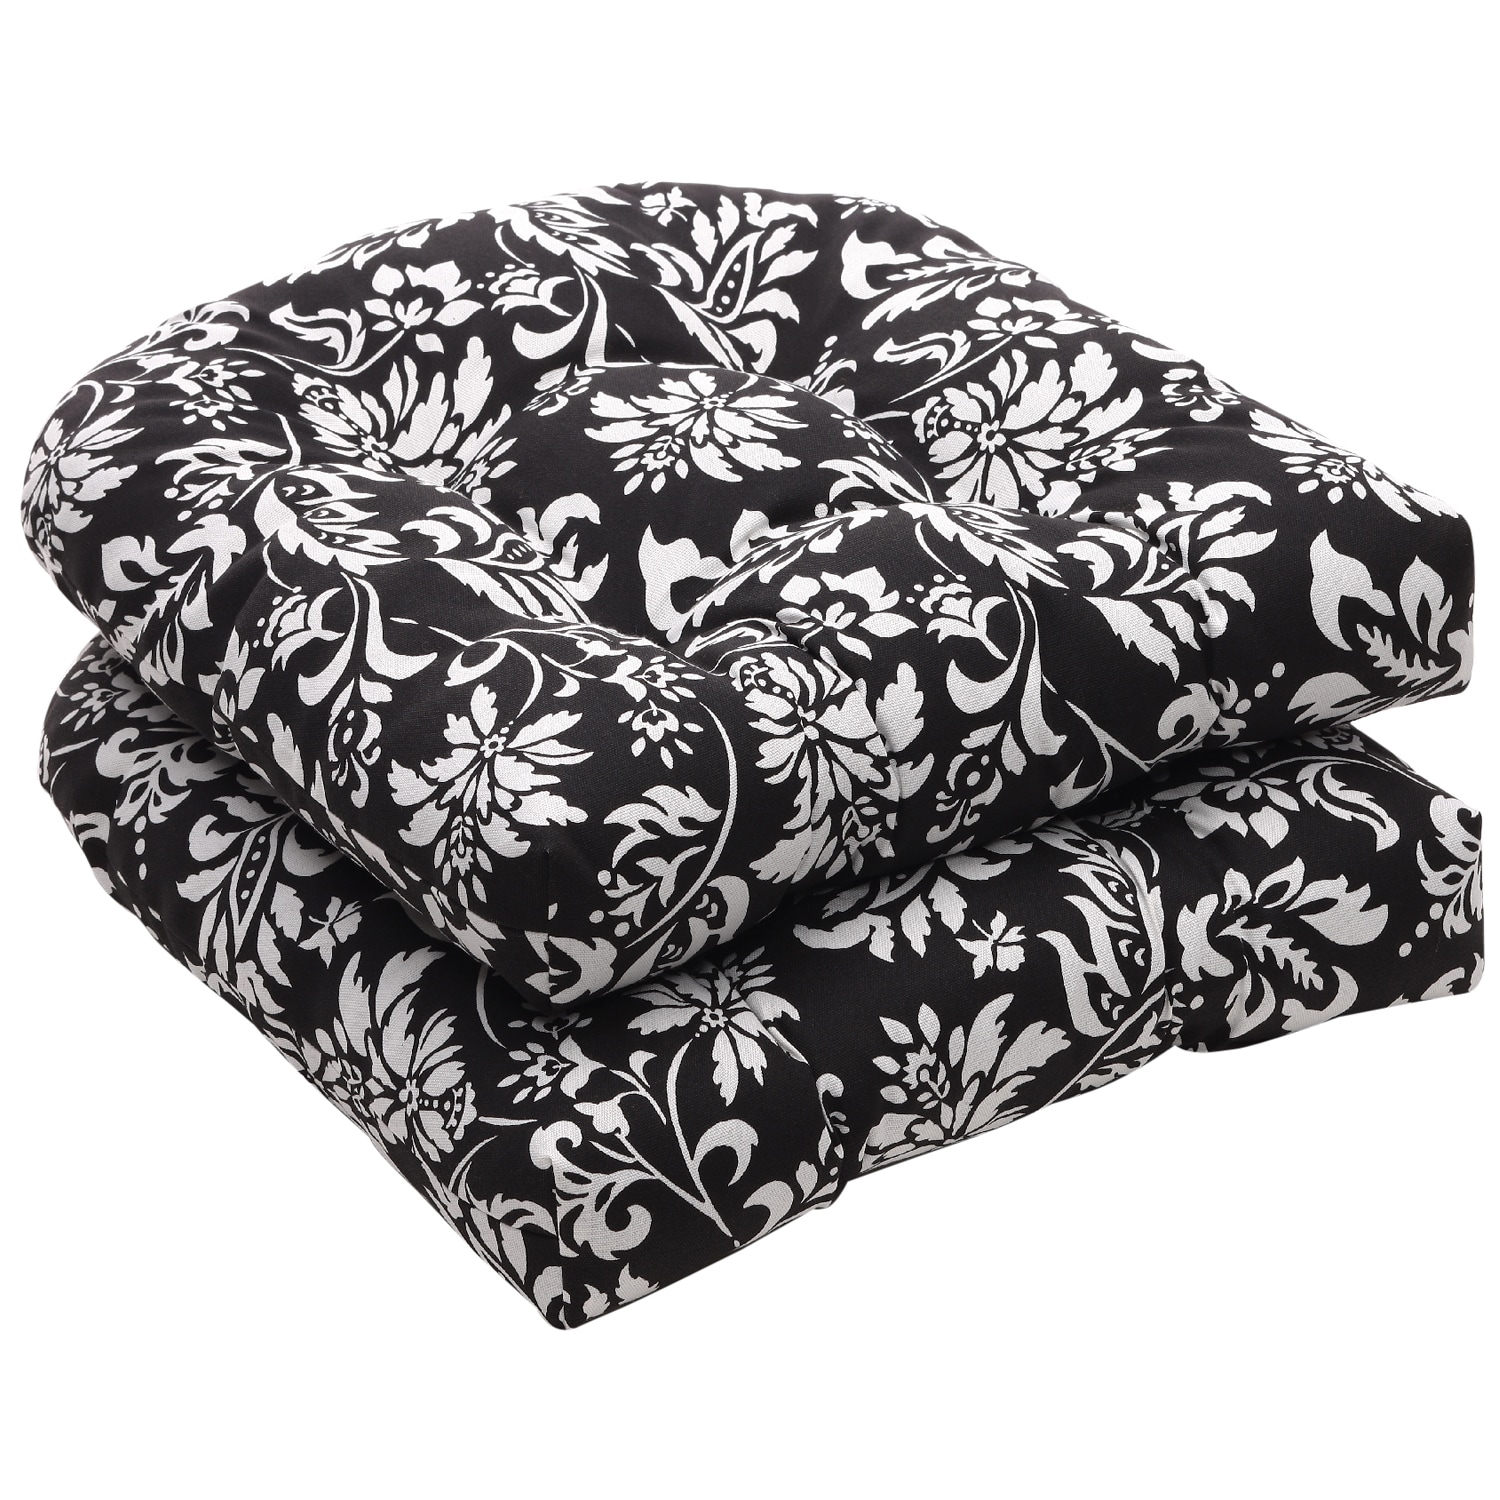 black chair cushions cover rental kitchener pillow perfect outdoor white floral wicker seat